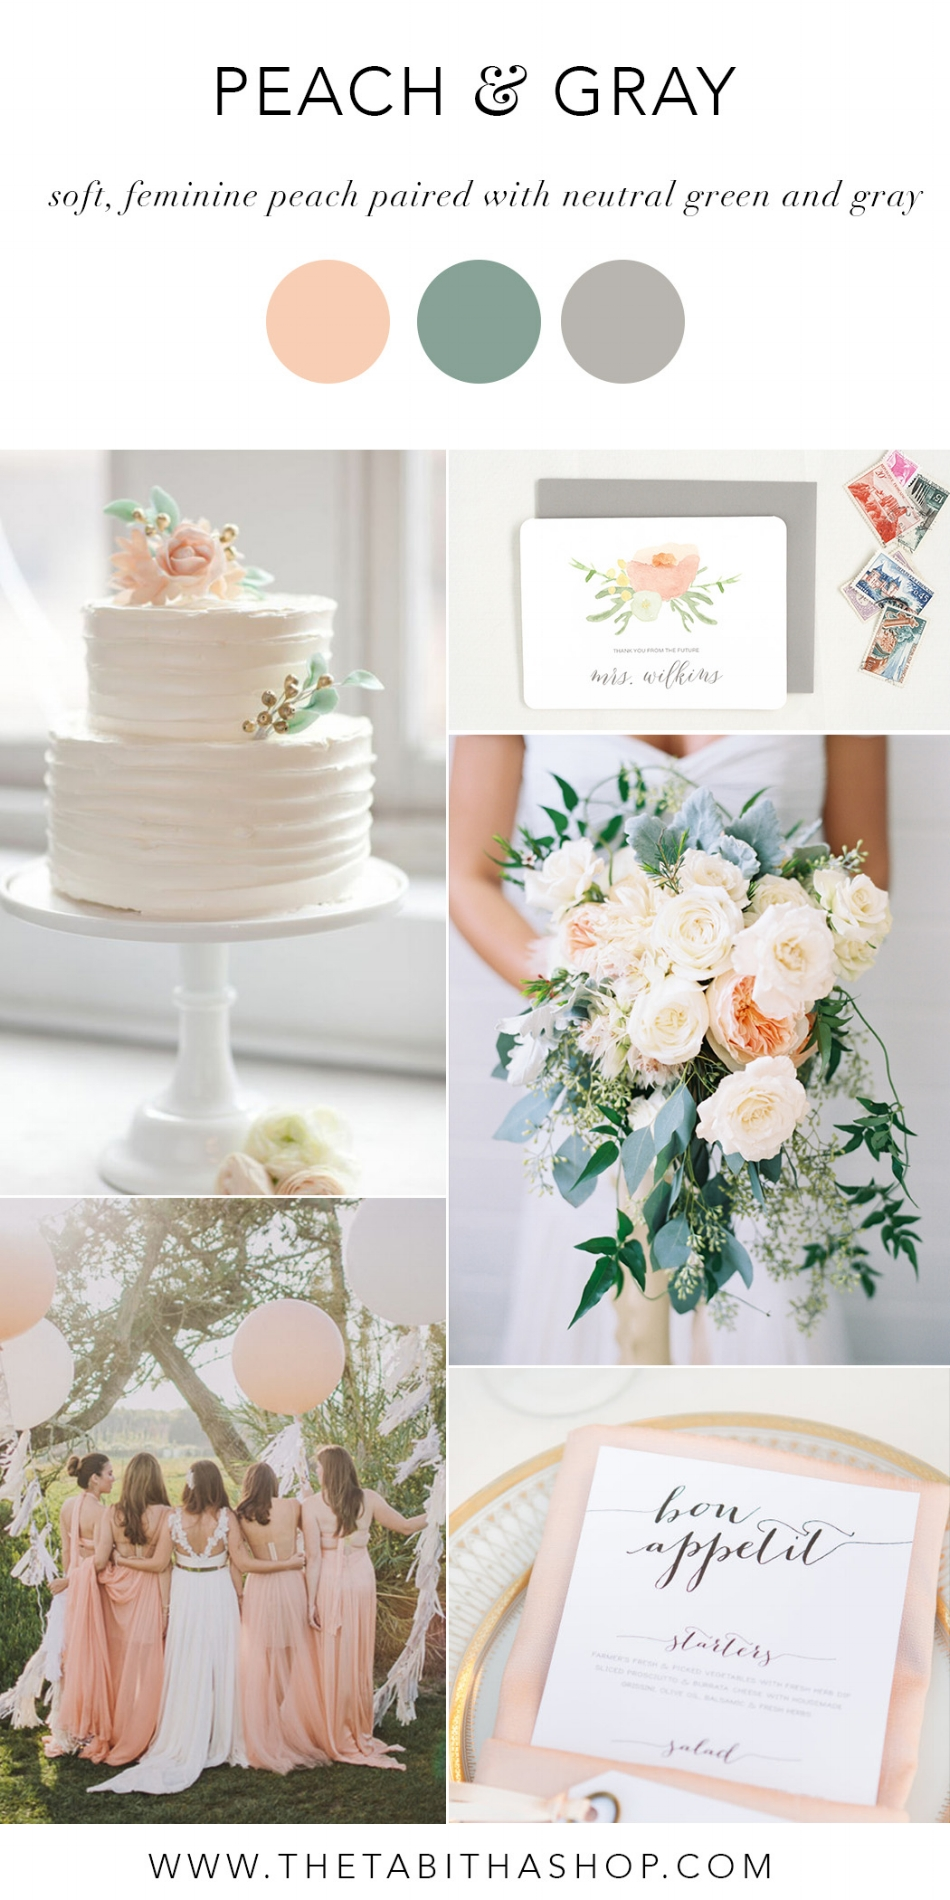 Clockwise, starting top left: Photo via  Wistful Weddings  |  The Tabitha Shop thank you cards  | Photo by   Austin Gros via  Ruffled  | Photo by Anna Jockish via  Style Me Pretty  | Photo by Sean Flanigan via  Green Wedding Shoes